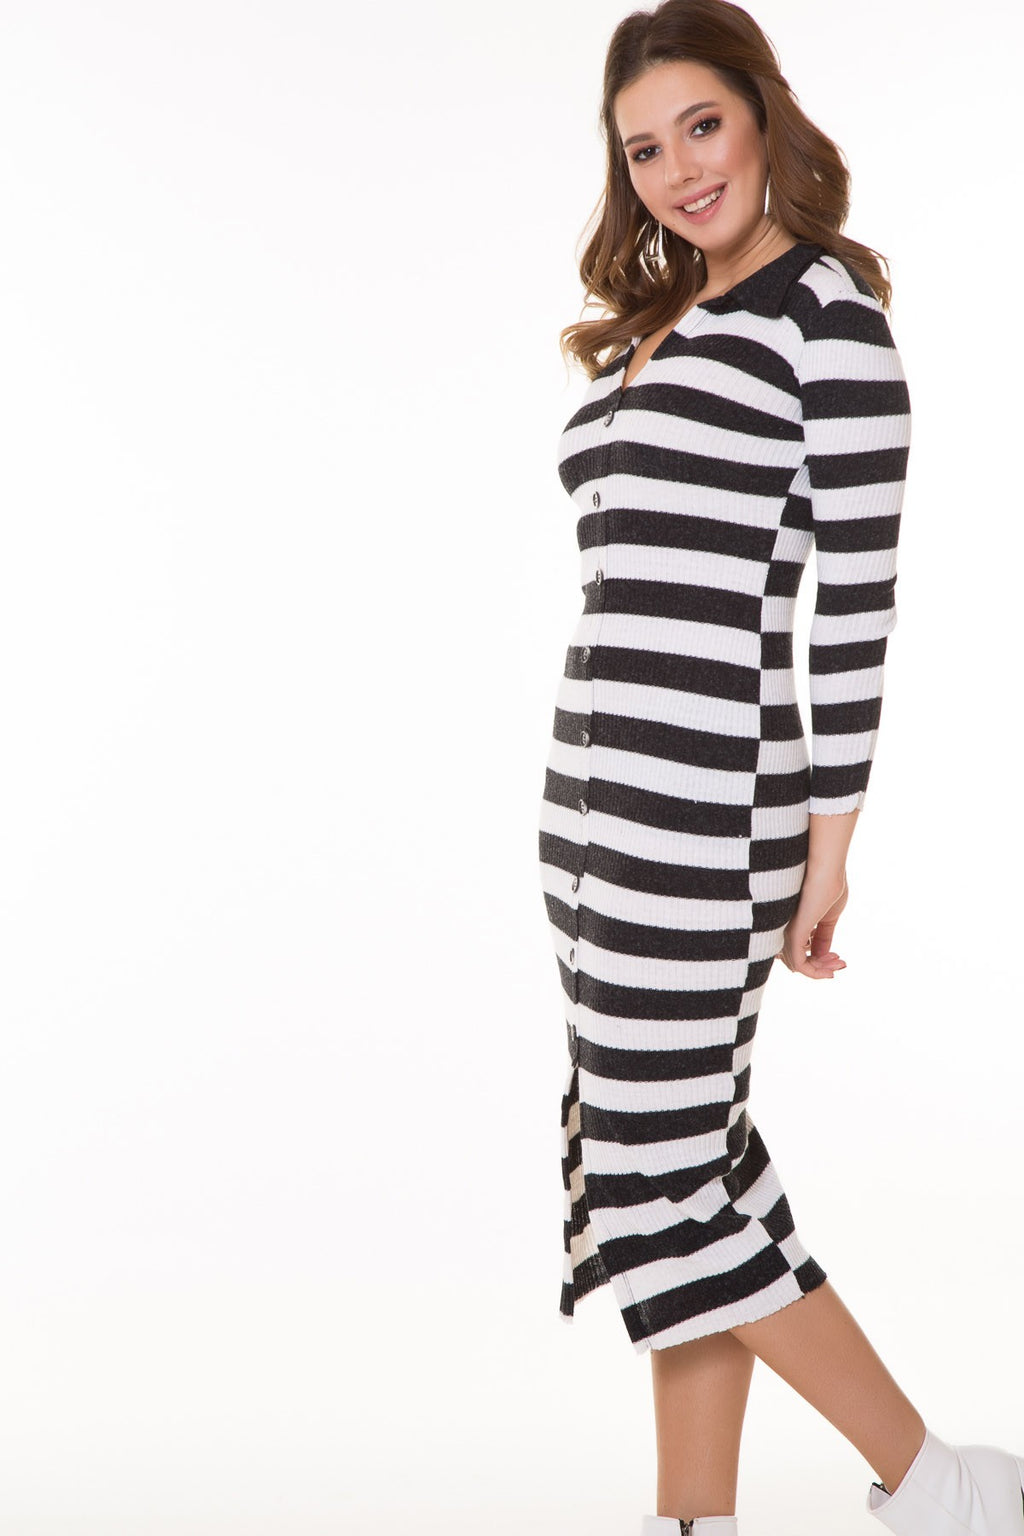 Button Detail Striped Dress - THE UNIQUE FIT